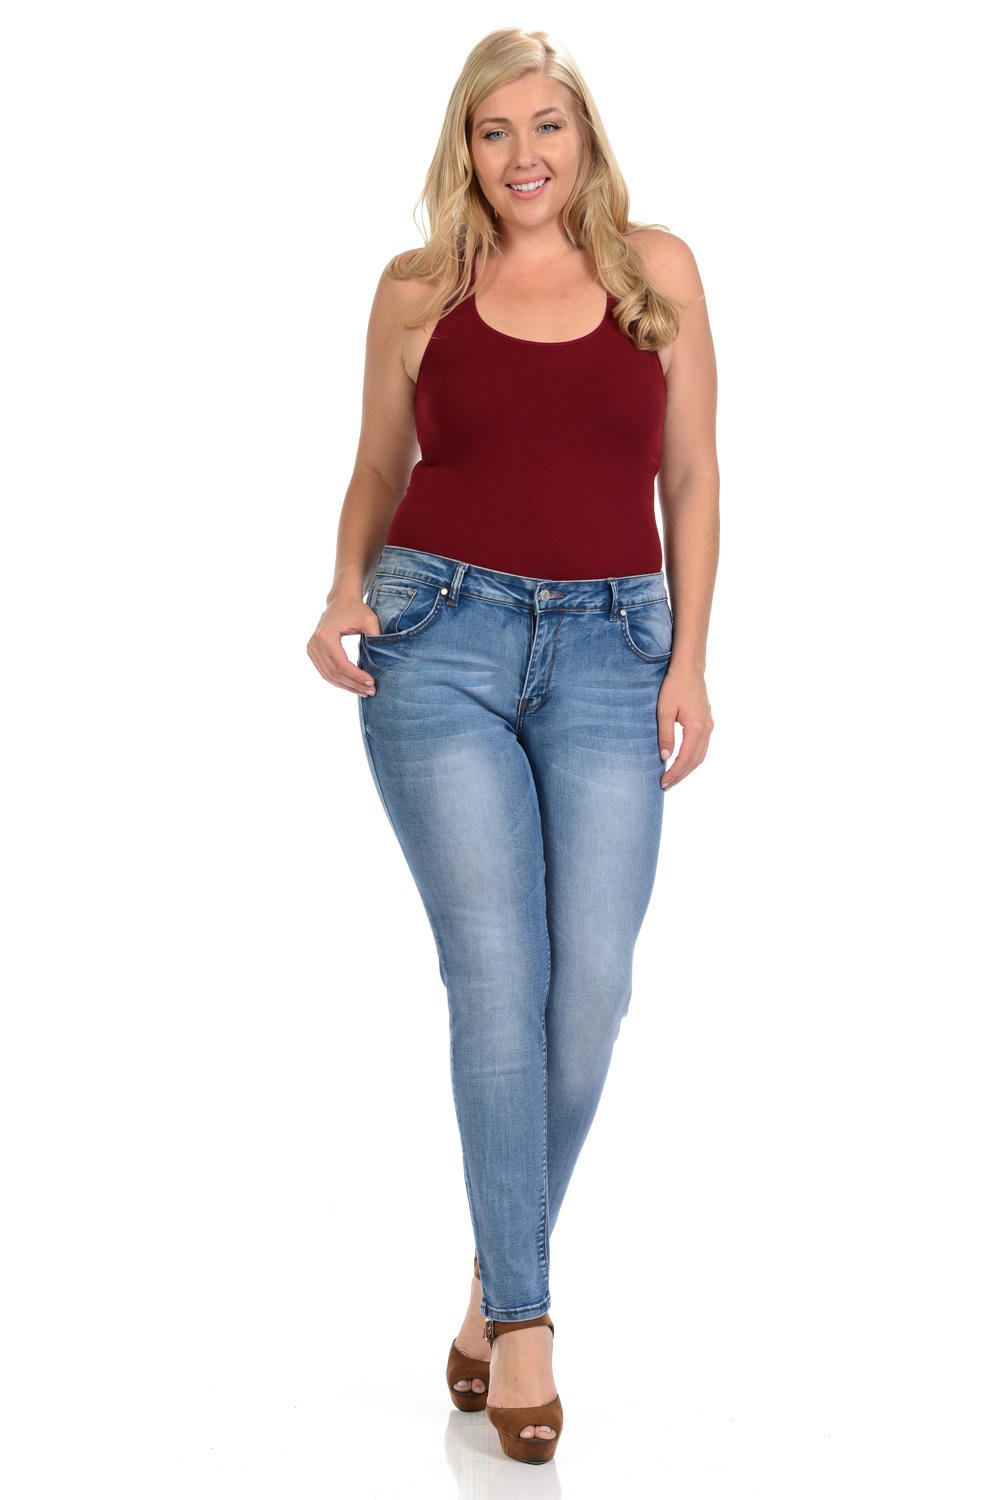 Sweet Look Black Edition Women's Jeans · Plus Size · High Waist · Push Up · Style A283 · Blue · Size 18